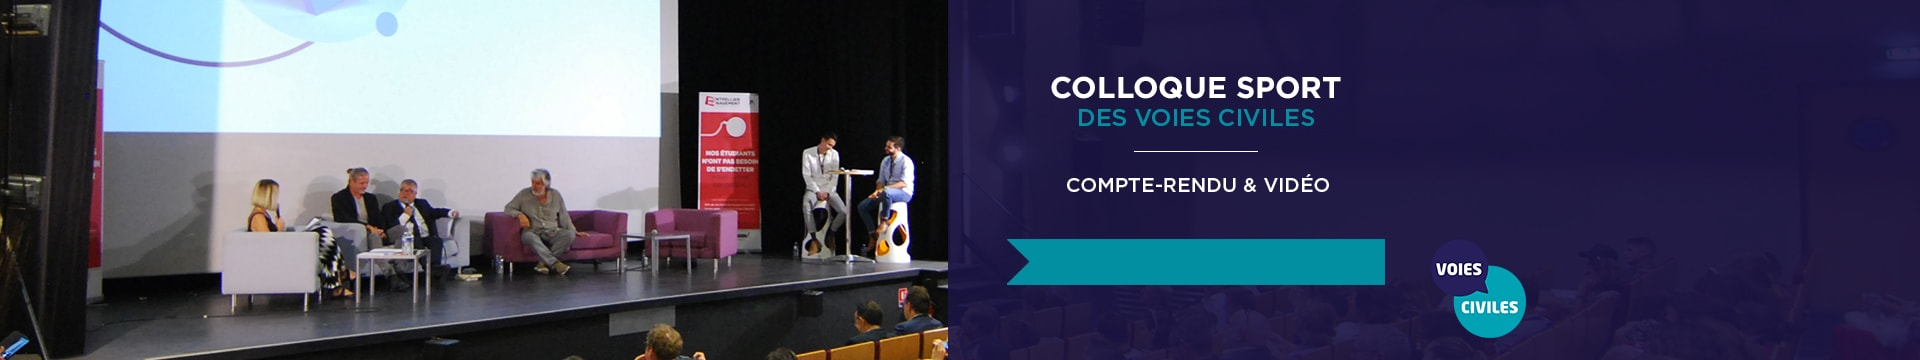 Retour Colloque Sport Voies Civiles - Montpellier Management